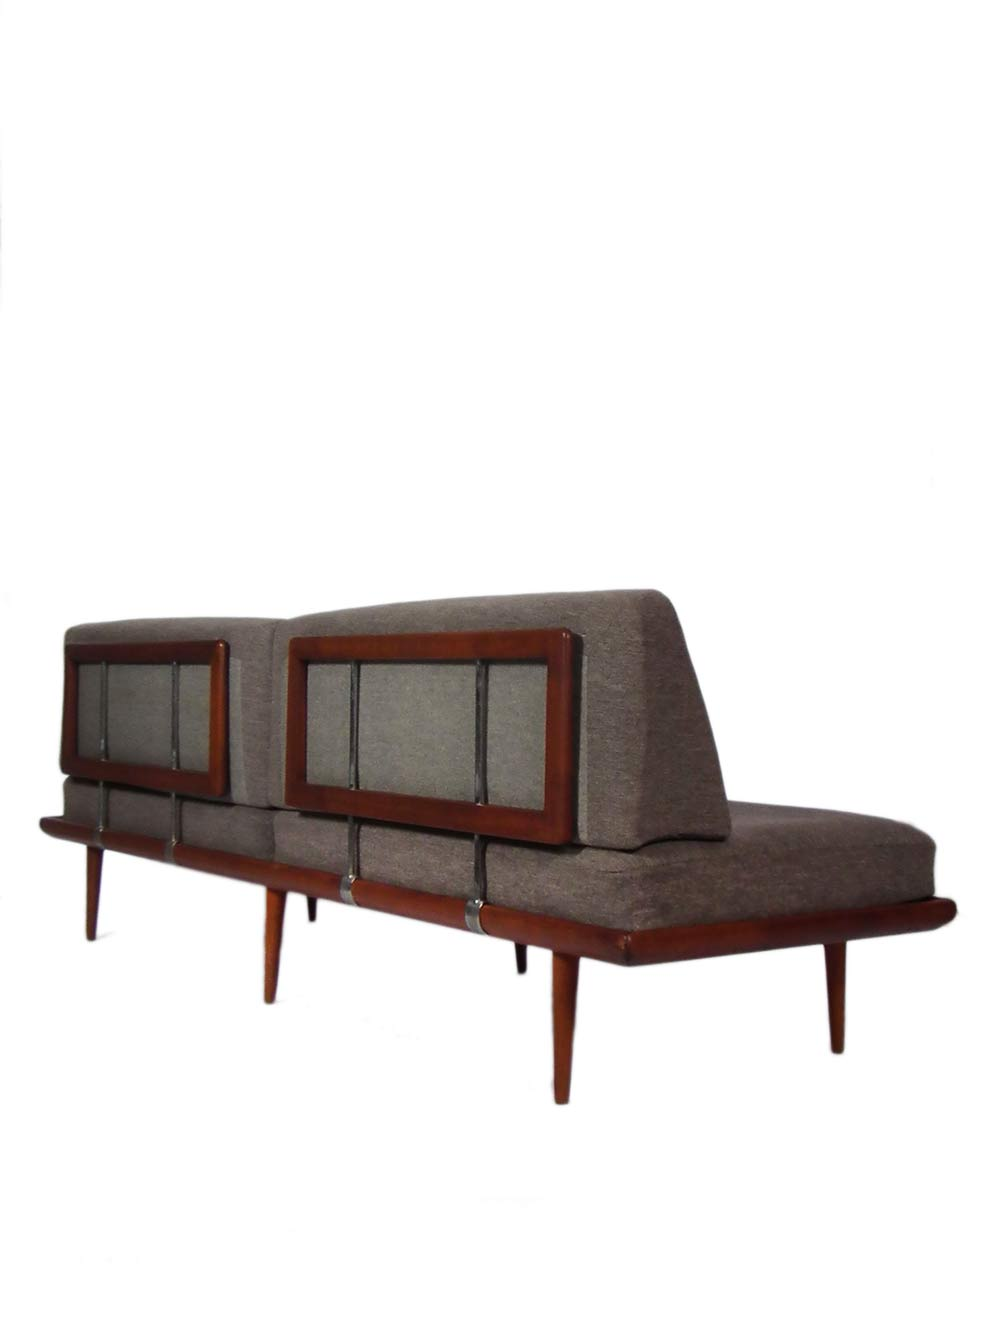 Danish Design Sofa Bed